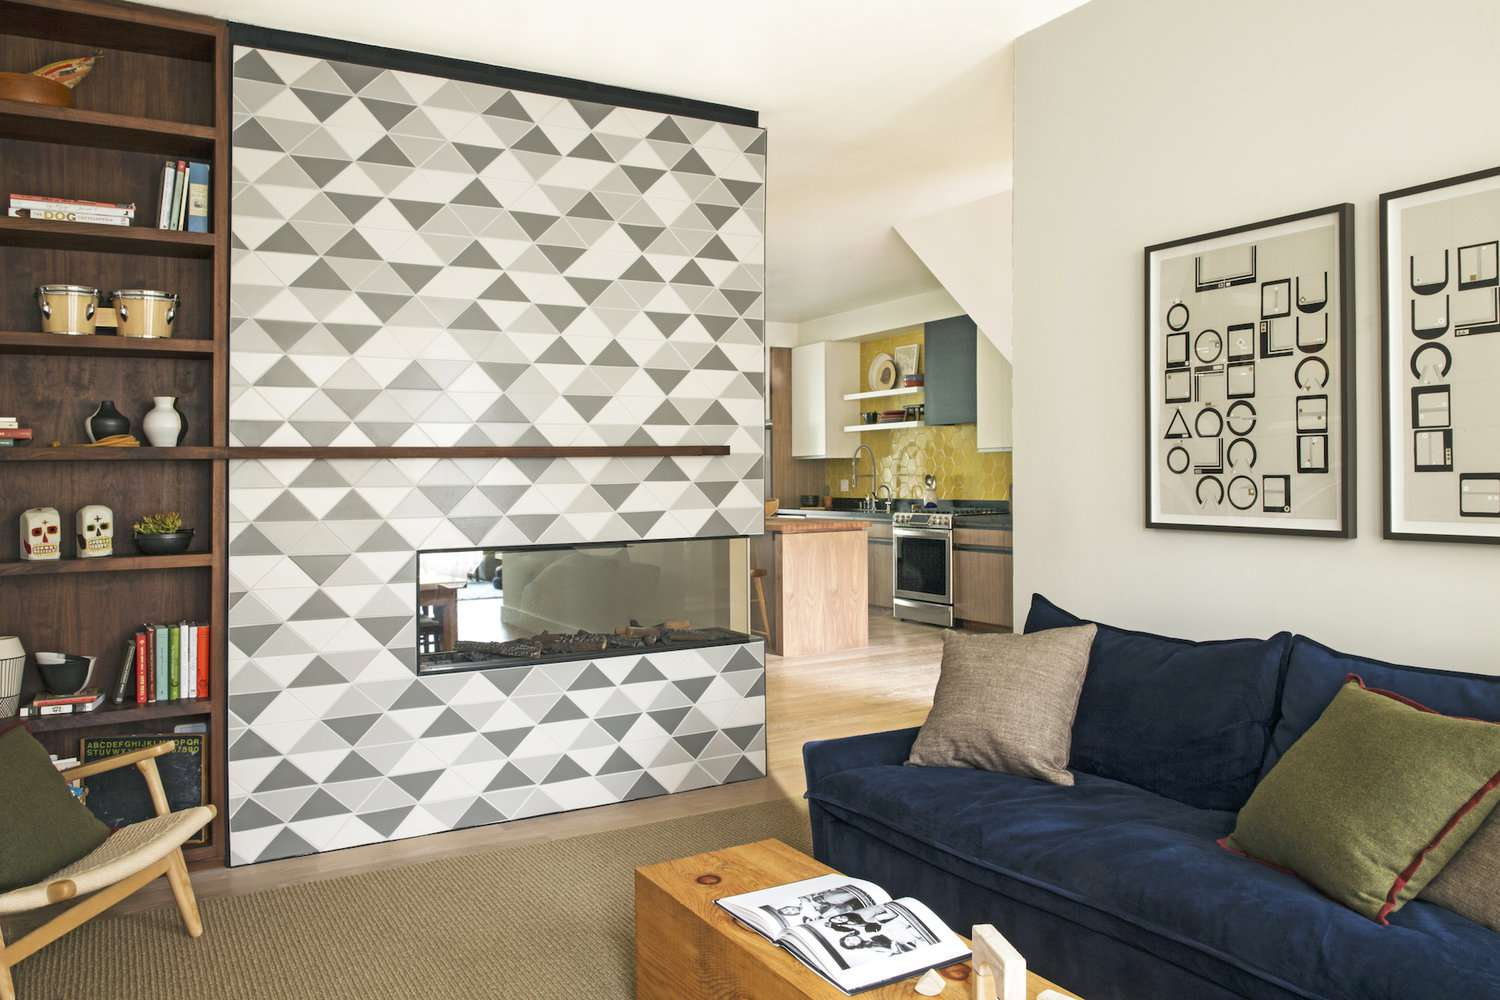 Electric Fireplace with patterned tile